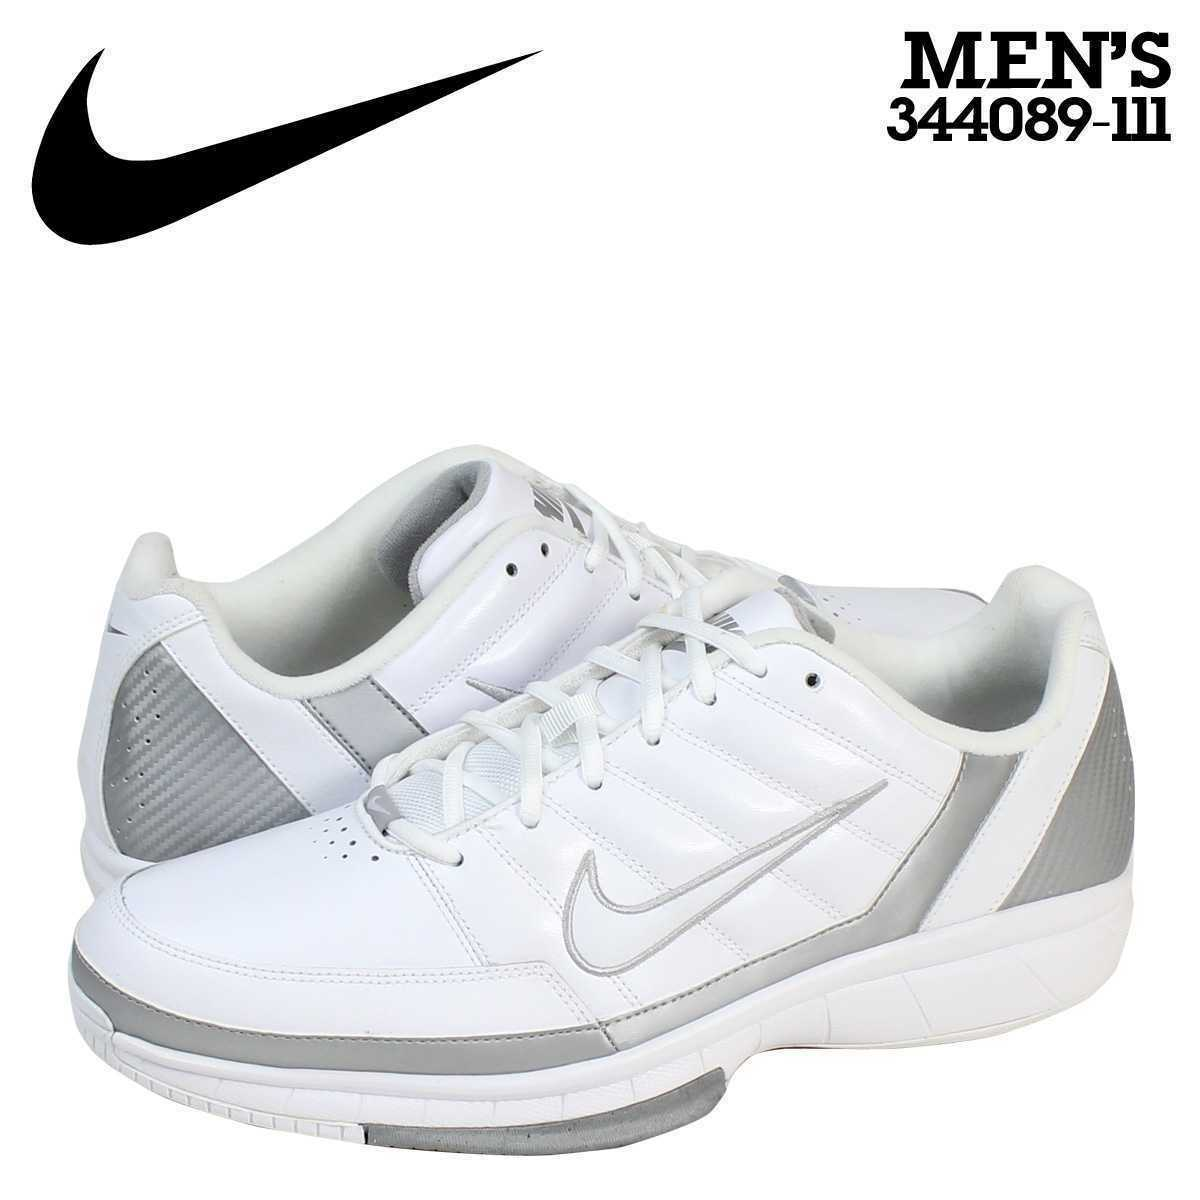 Nike   Air Fast N' Low 344089-111 mens shoe size 13 New basketball white RARE